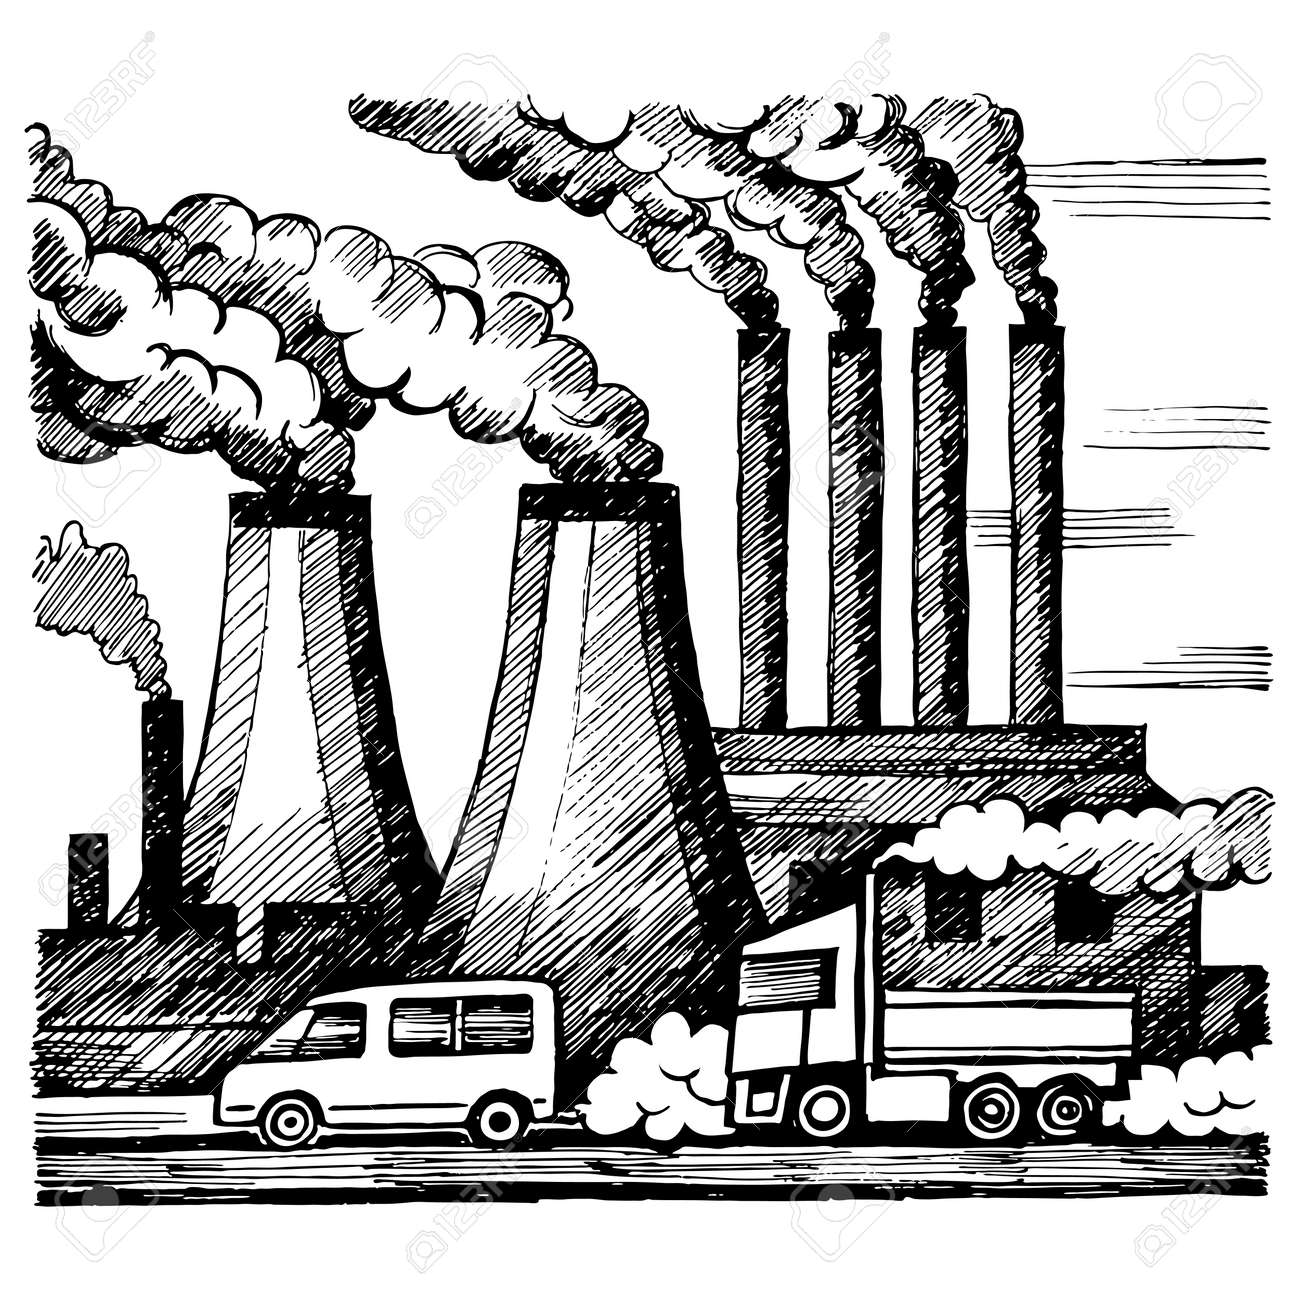 Ecology air and atmosphere pollution stock vector 73852425